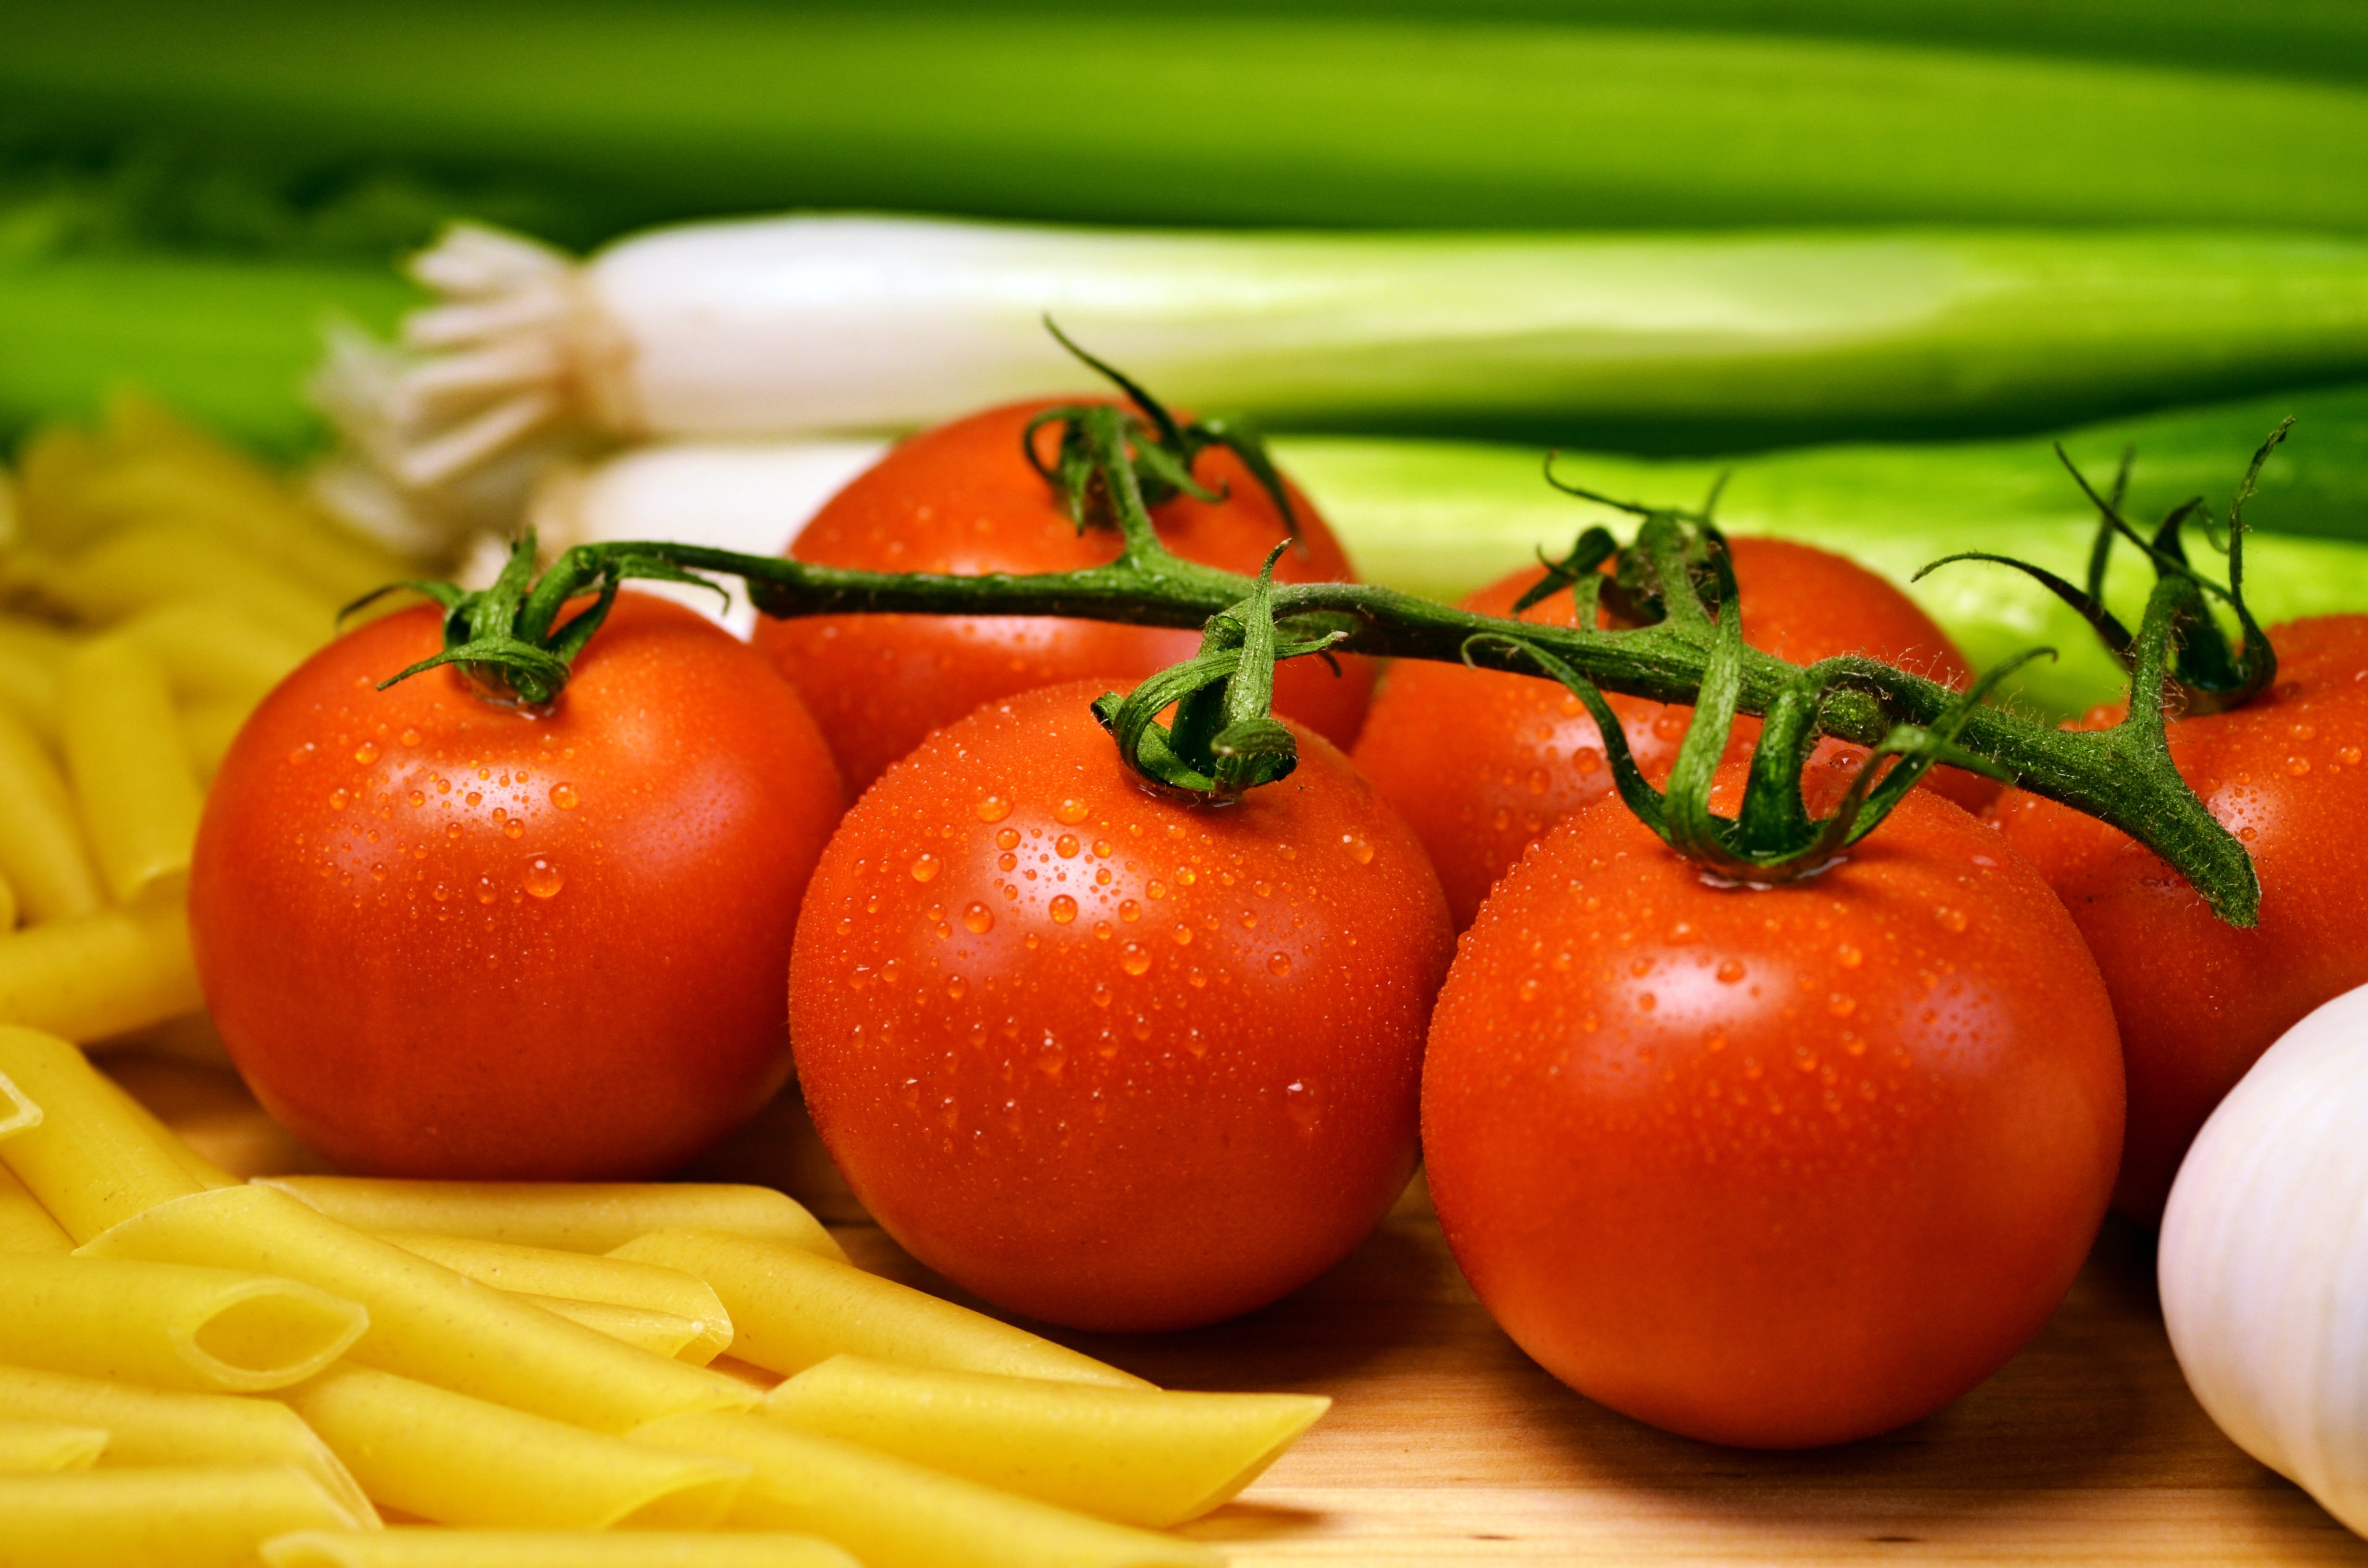 Close Up Photo of Red Tomatoes Near Pasta